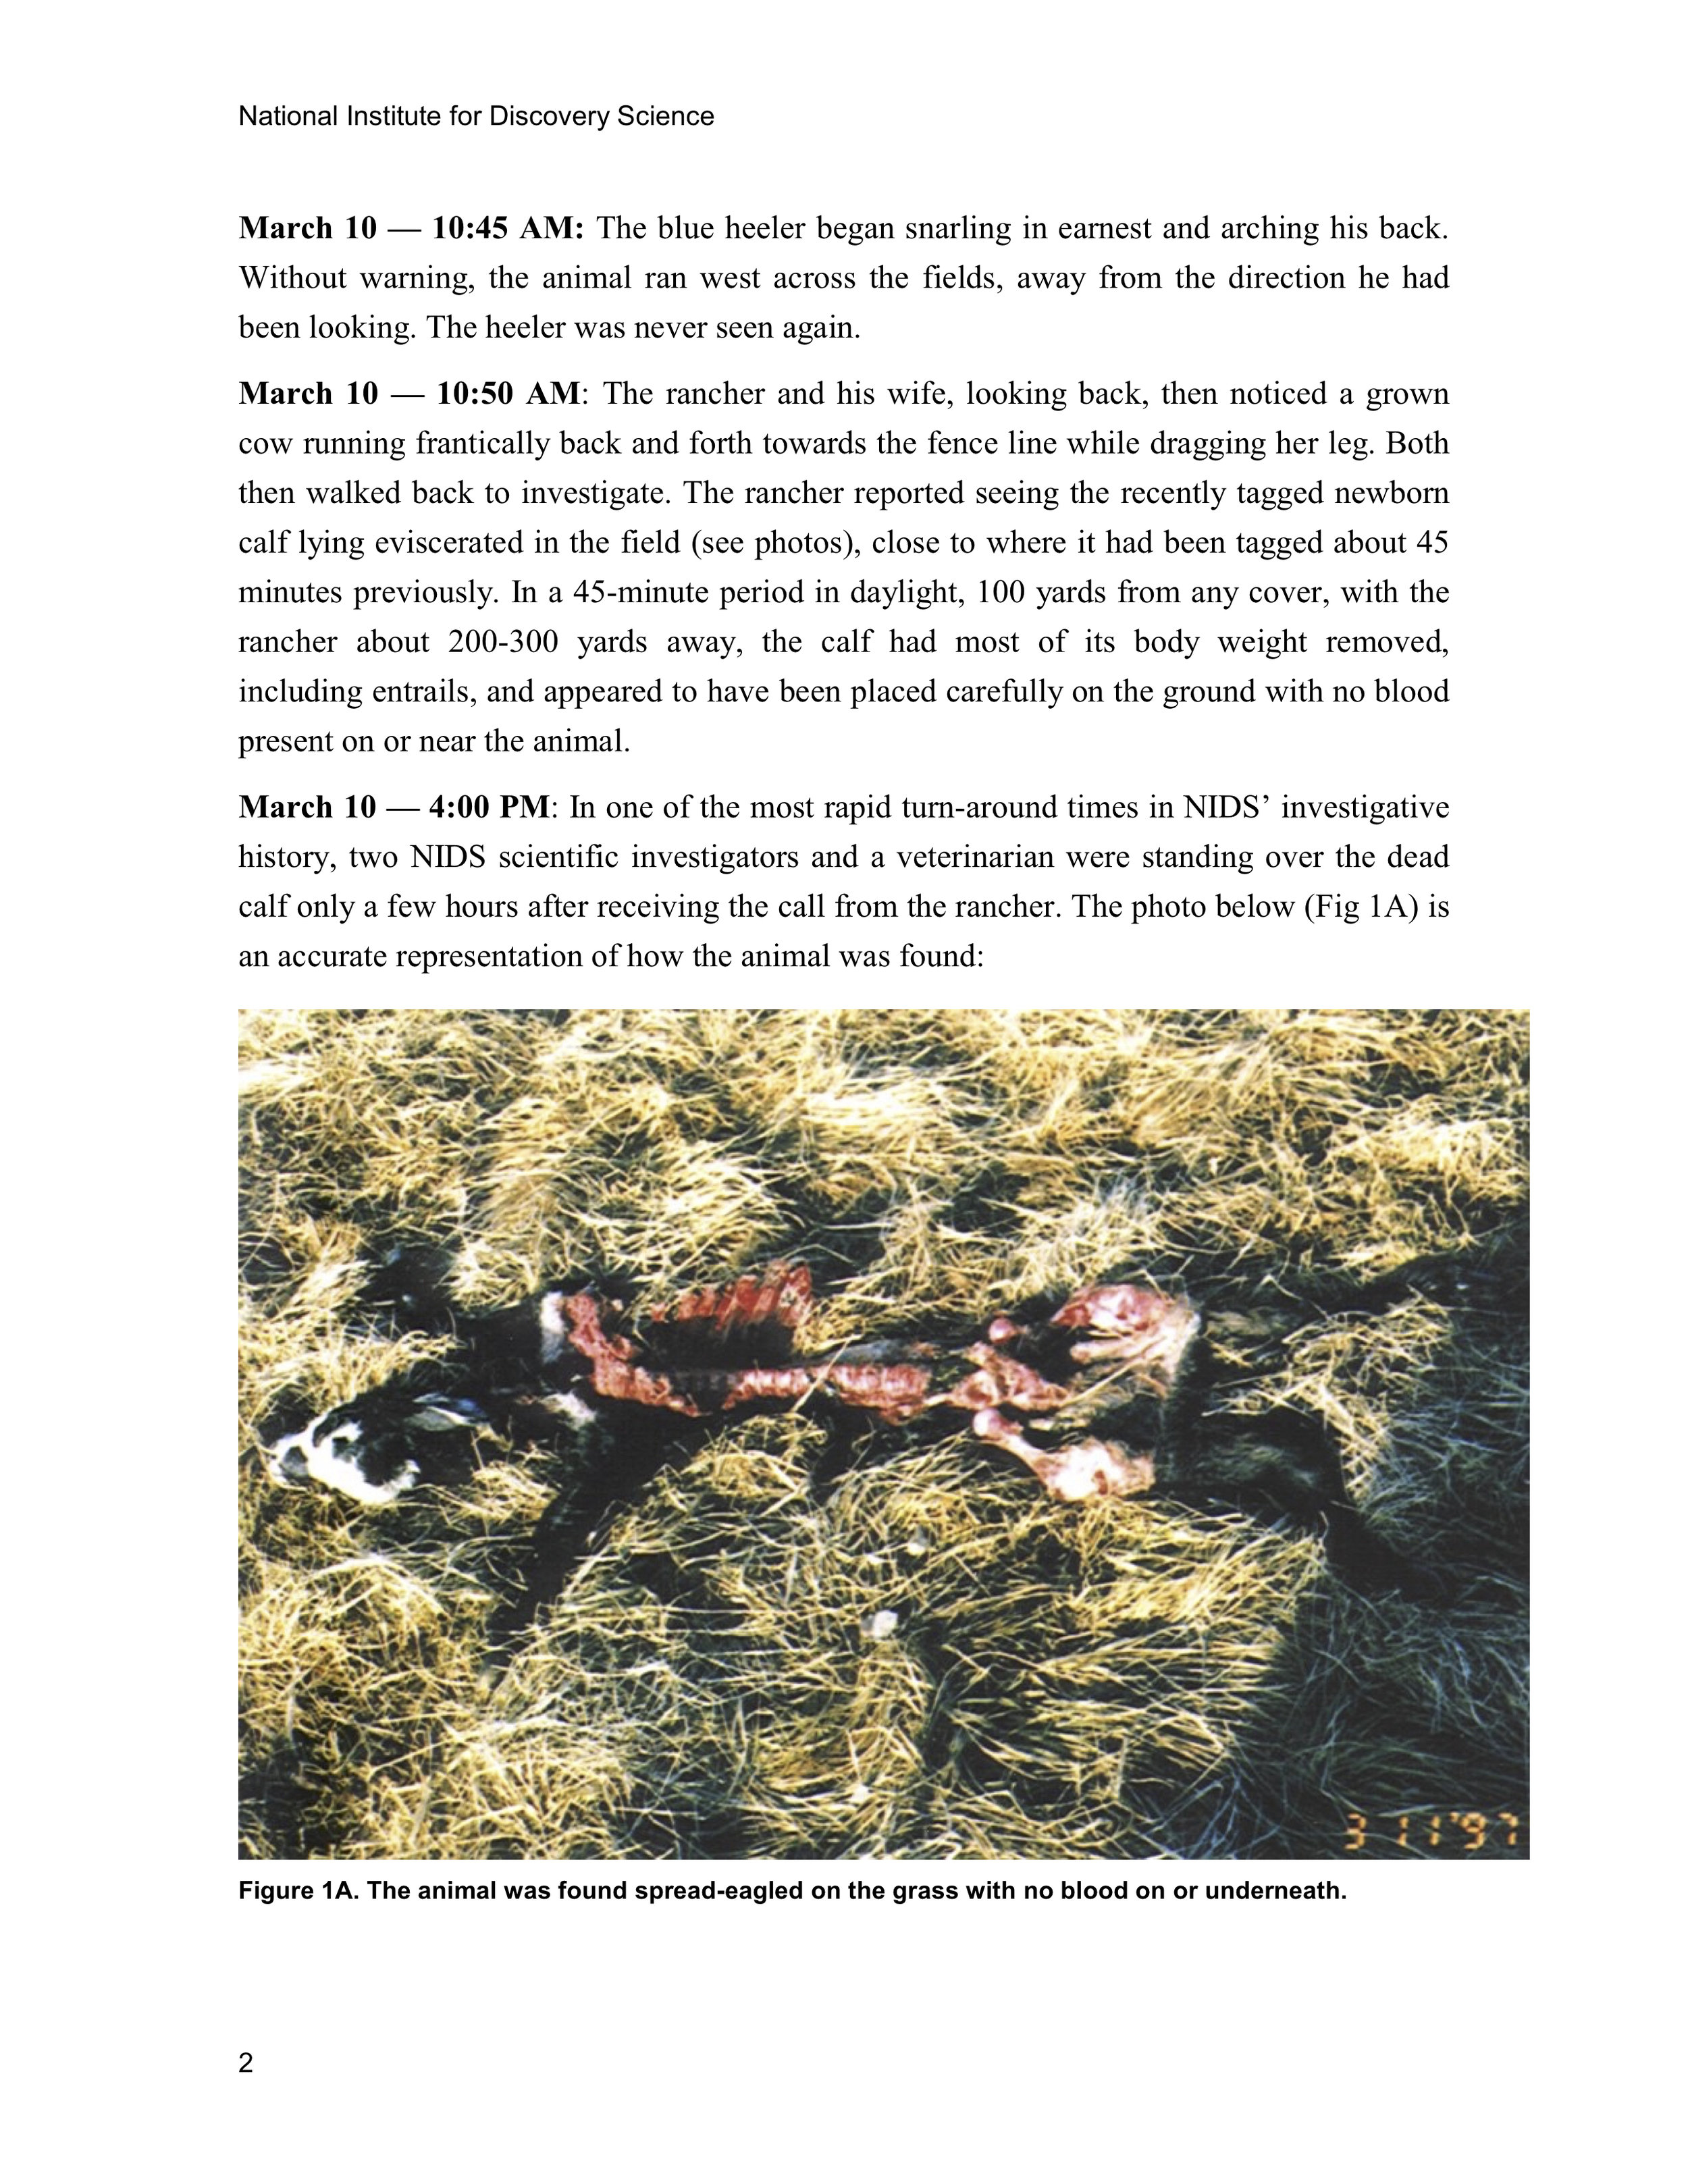 1997 ANIMAL MUTILATION REPORT 1.jpg